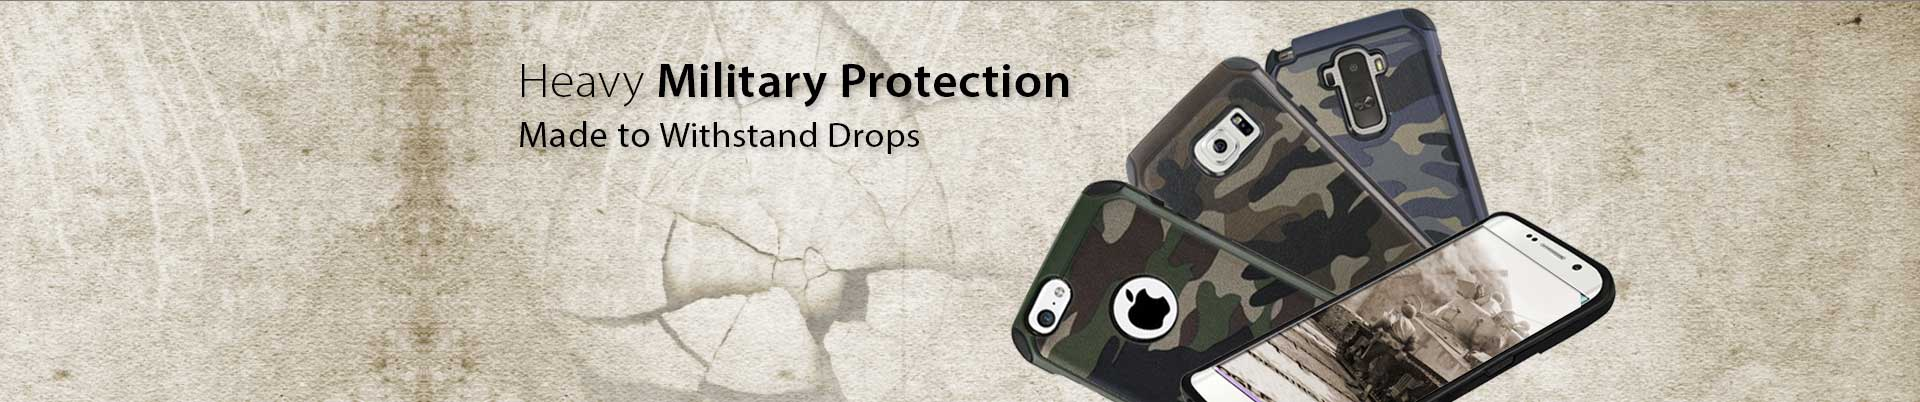 military-test-case-protection-banner-reiko-mgbey-pic1.jpg